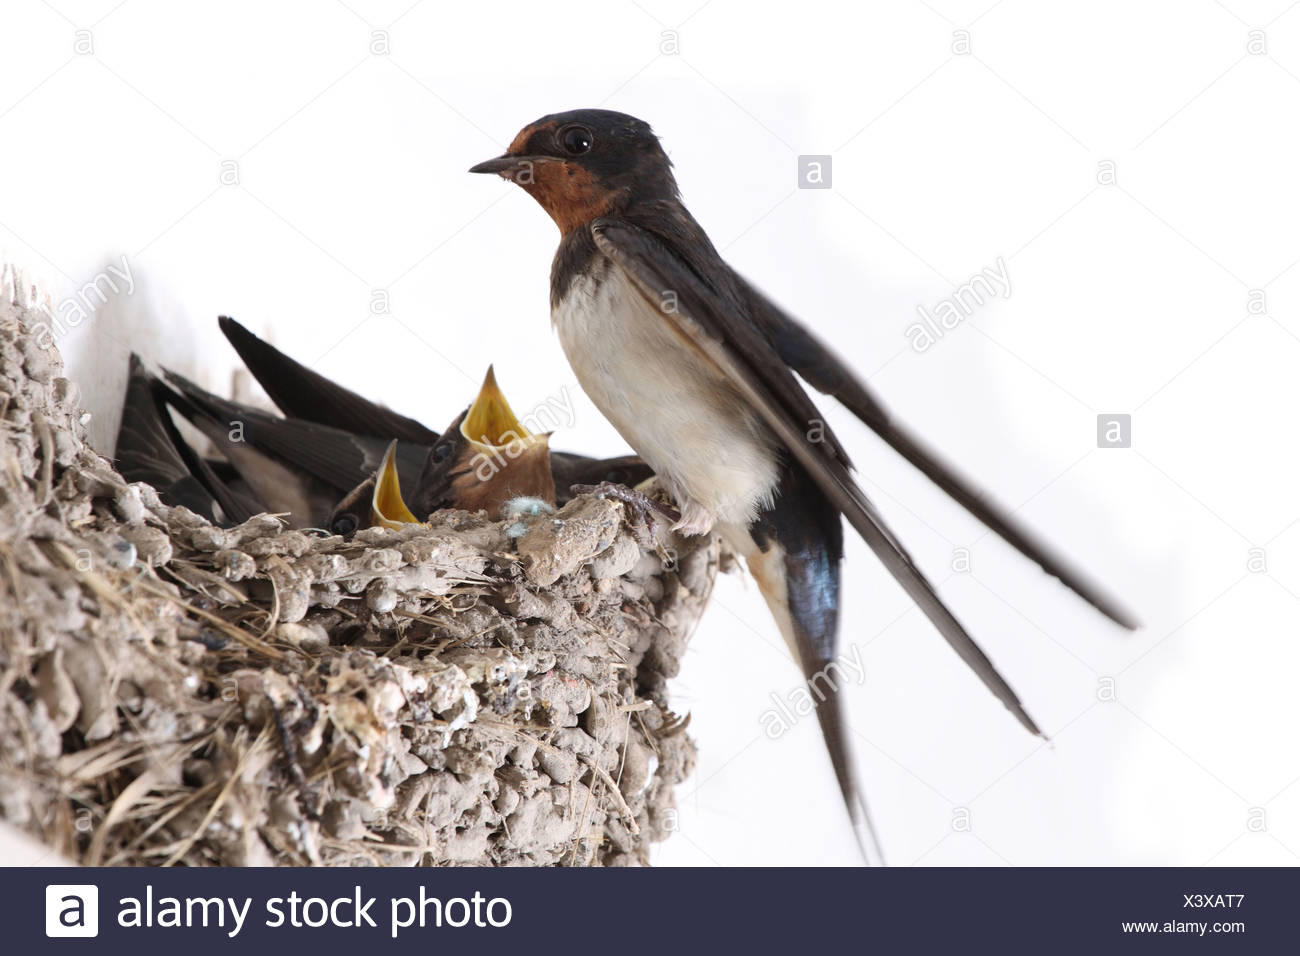 hungry birds - Stock Image